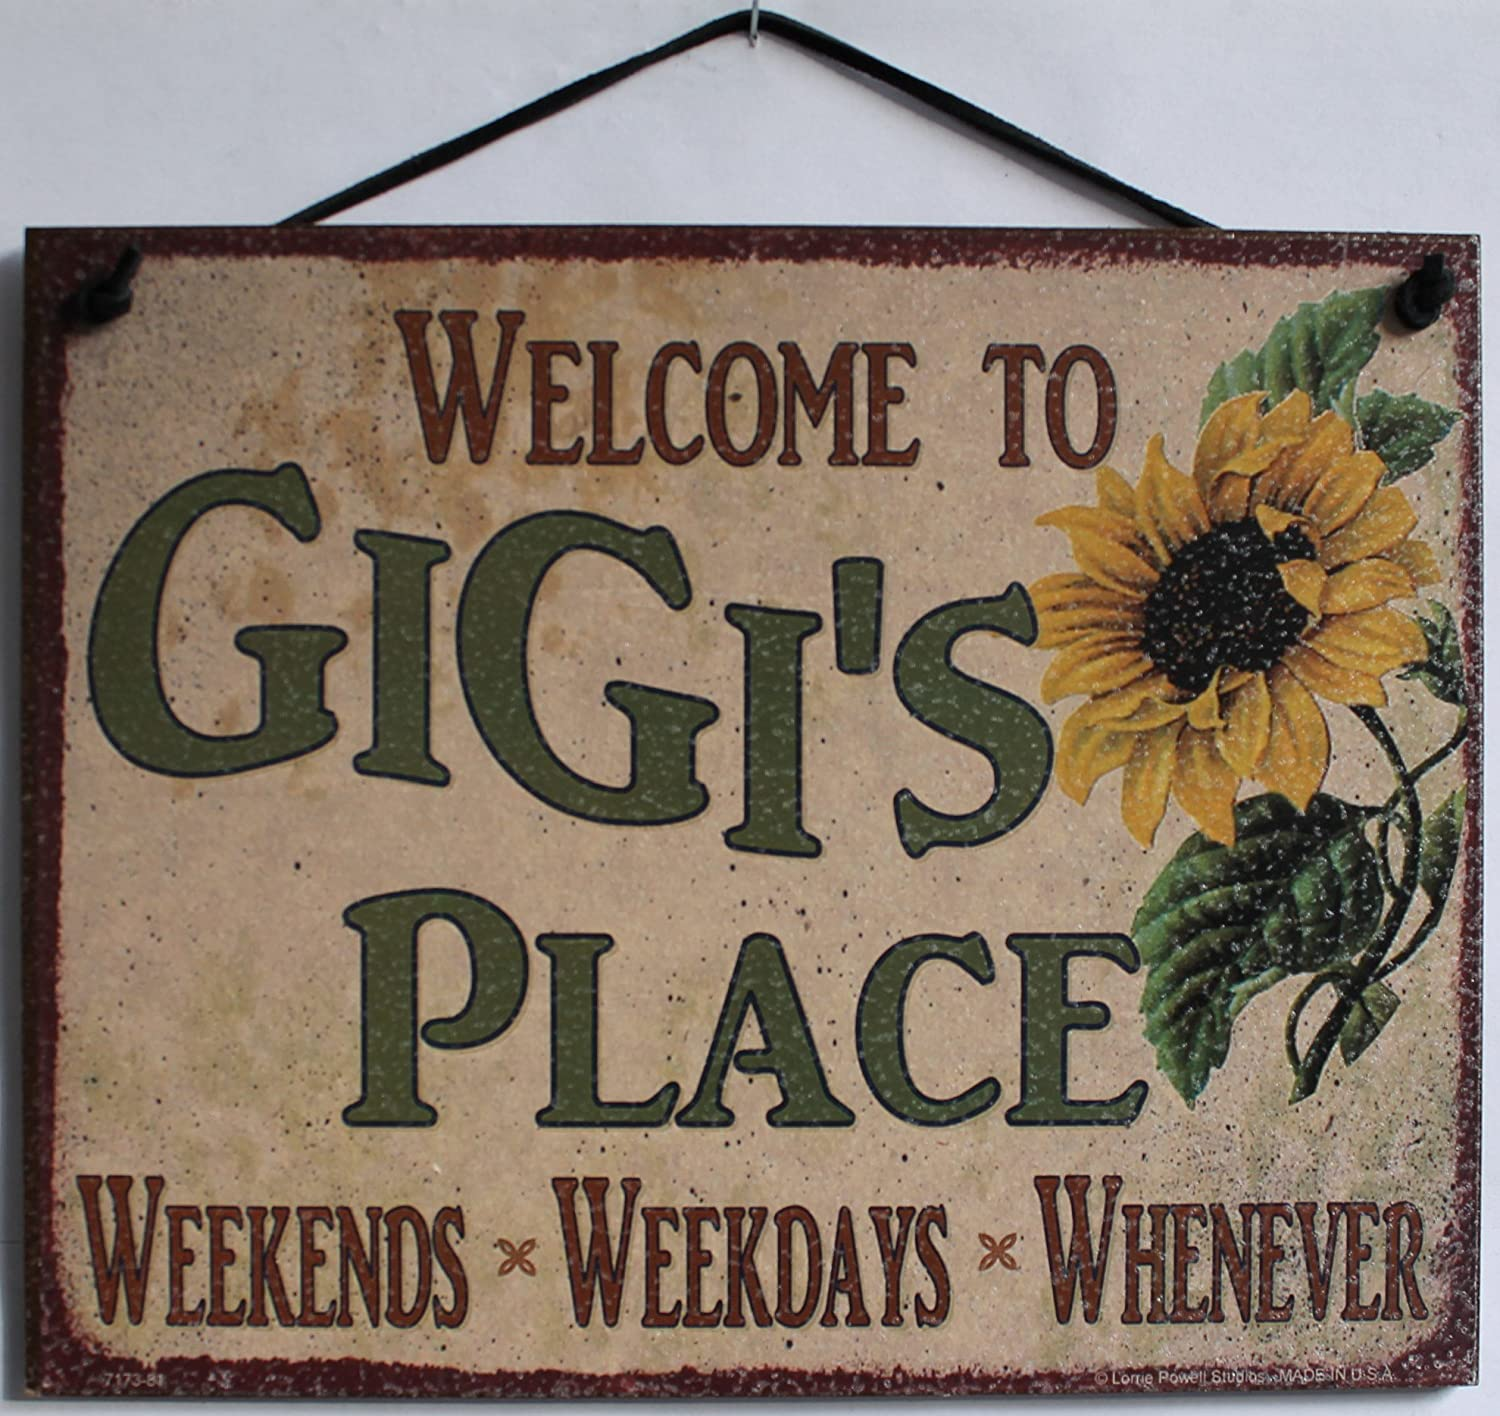 Sign with Sunflower Saying 'Welcome To GiGi's Place WEEKENDS, WEEKDAYS, WHENEVER' Decorative Fun Universal Household Signs from Egbert's Treasures WHENEVER Decorative Fun Universal Household Signs from Egbert' s Treasures 7173-81